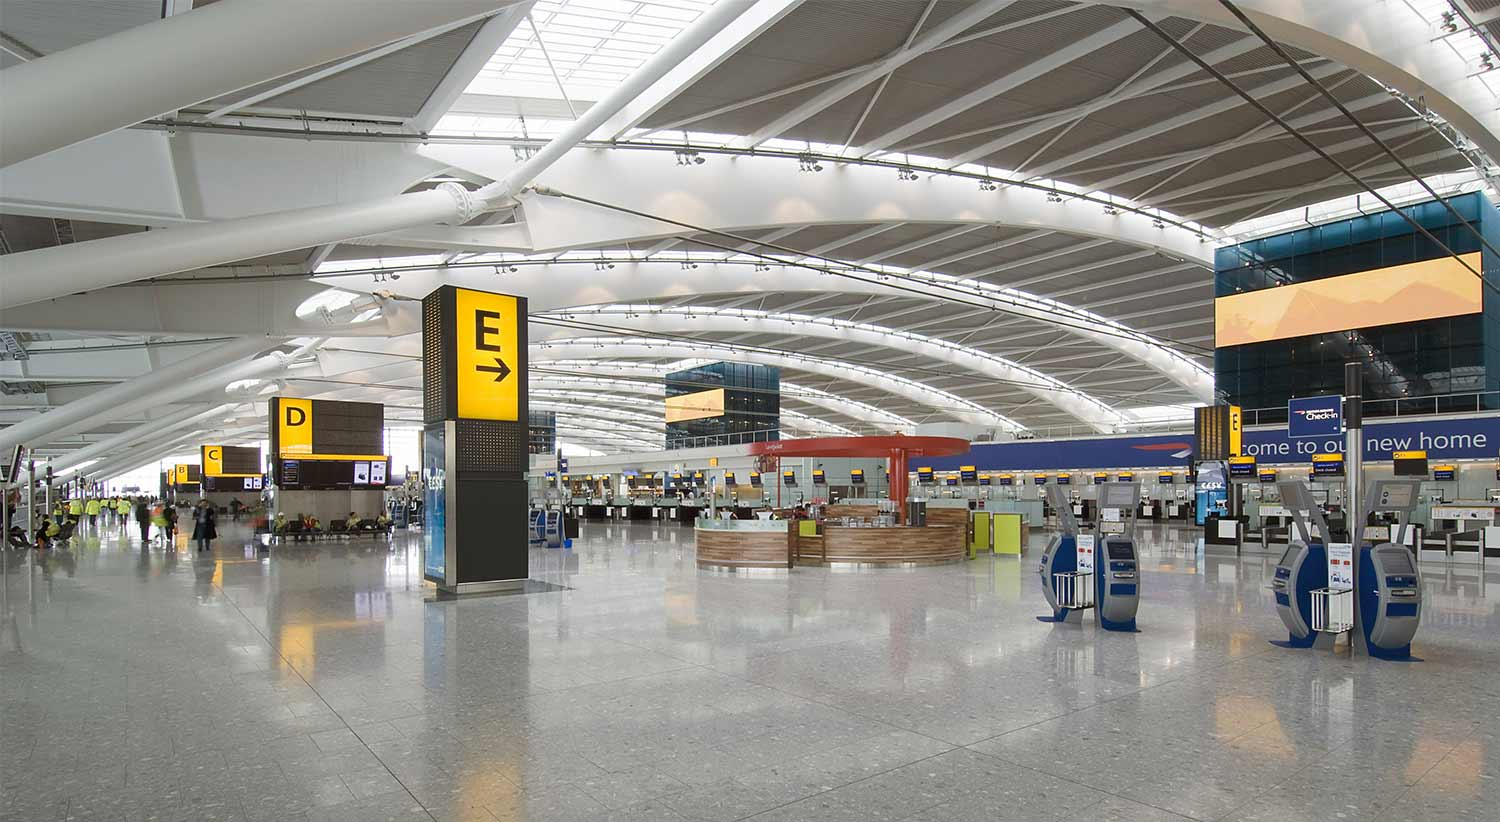 Airport-design_Heathrow